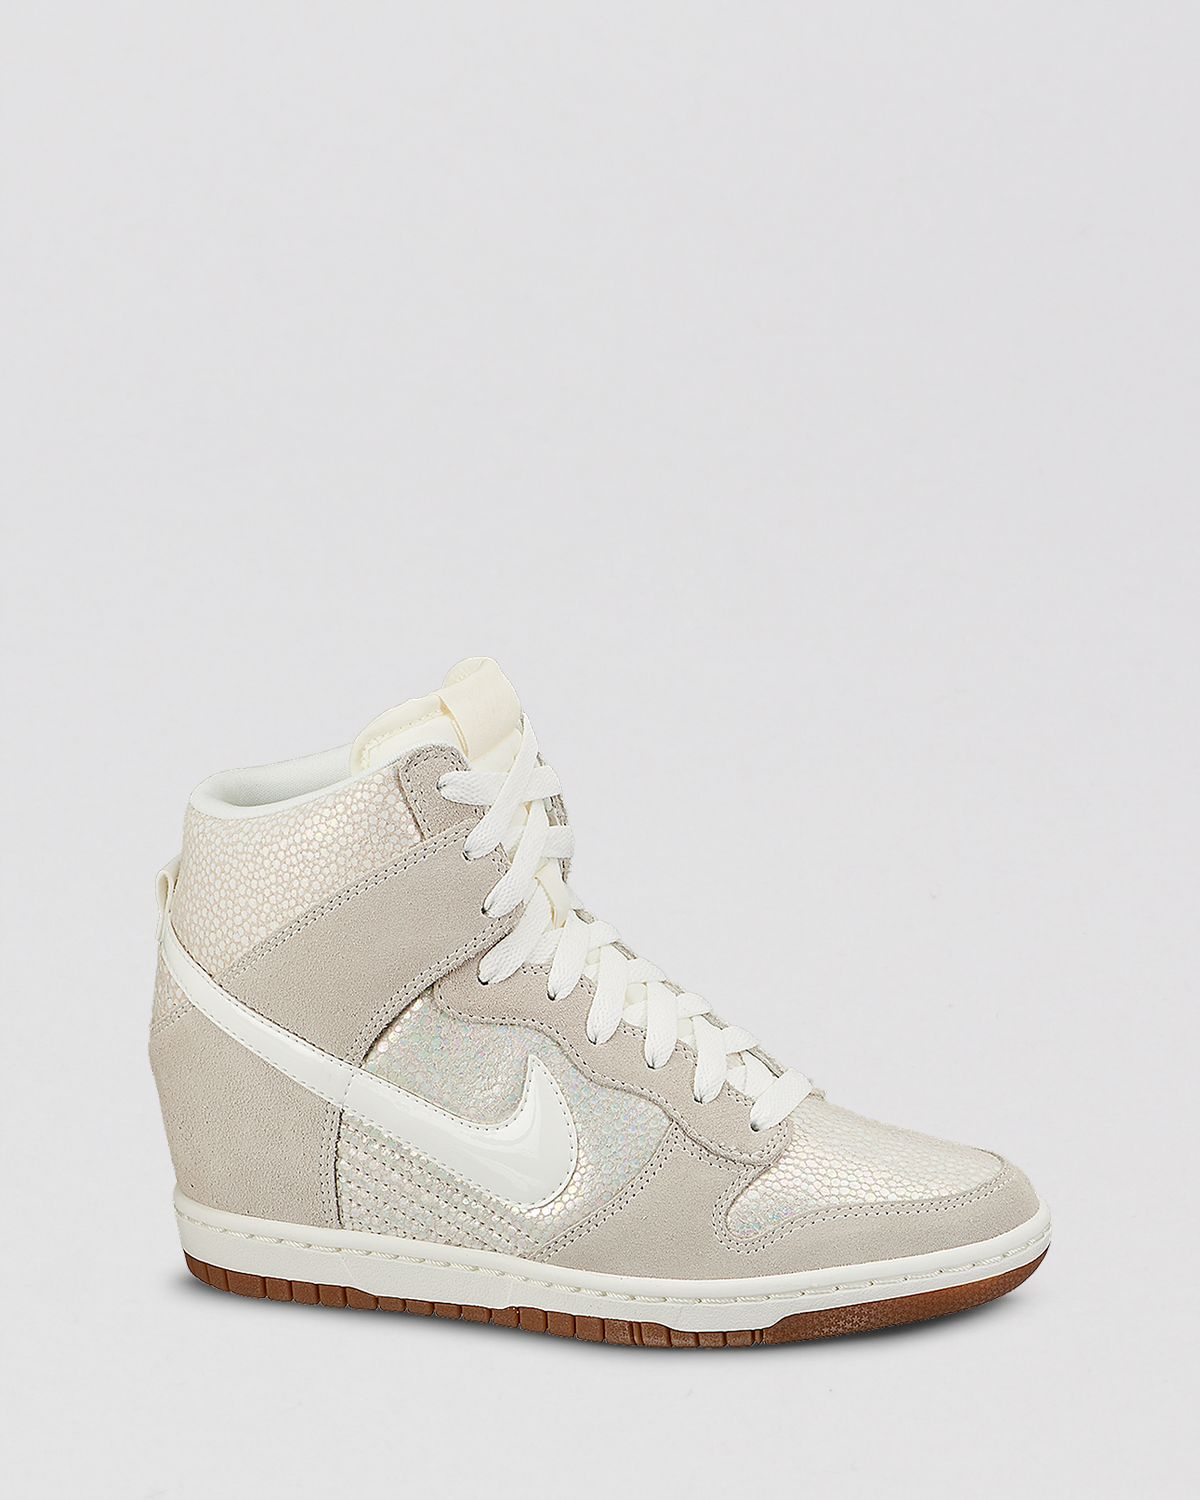 Lyst - Nike Lace Up High Top Wedge Sneakers - Women'S Dunk ...